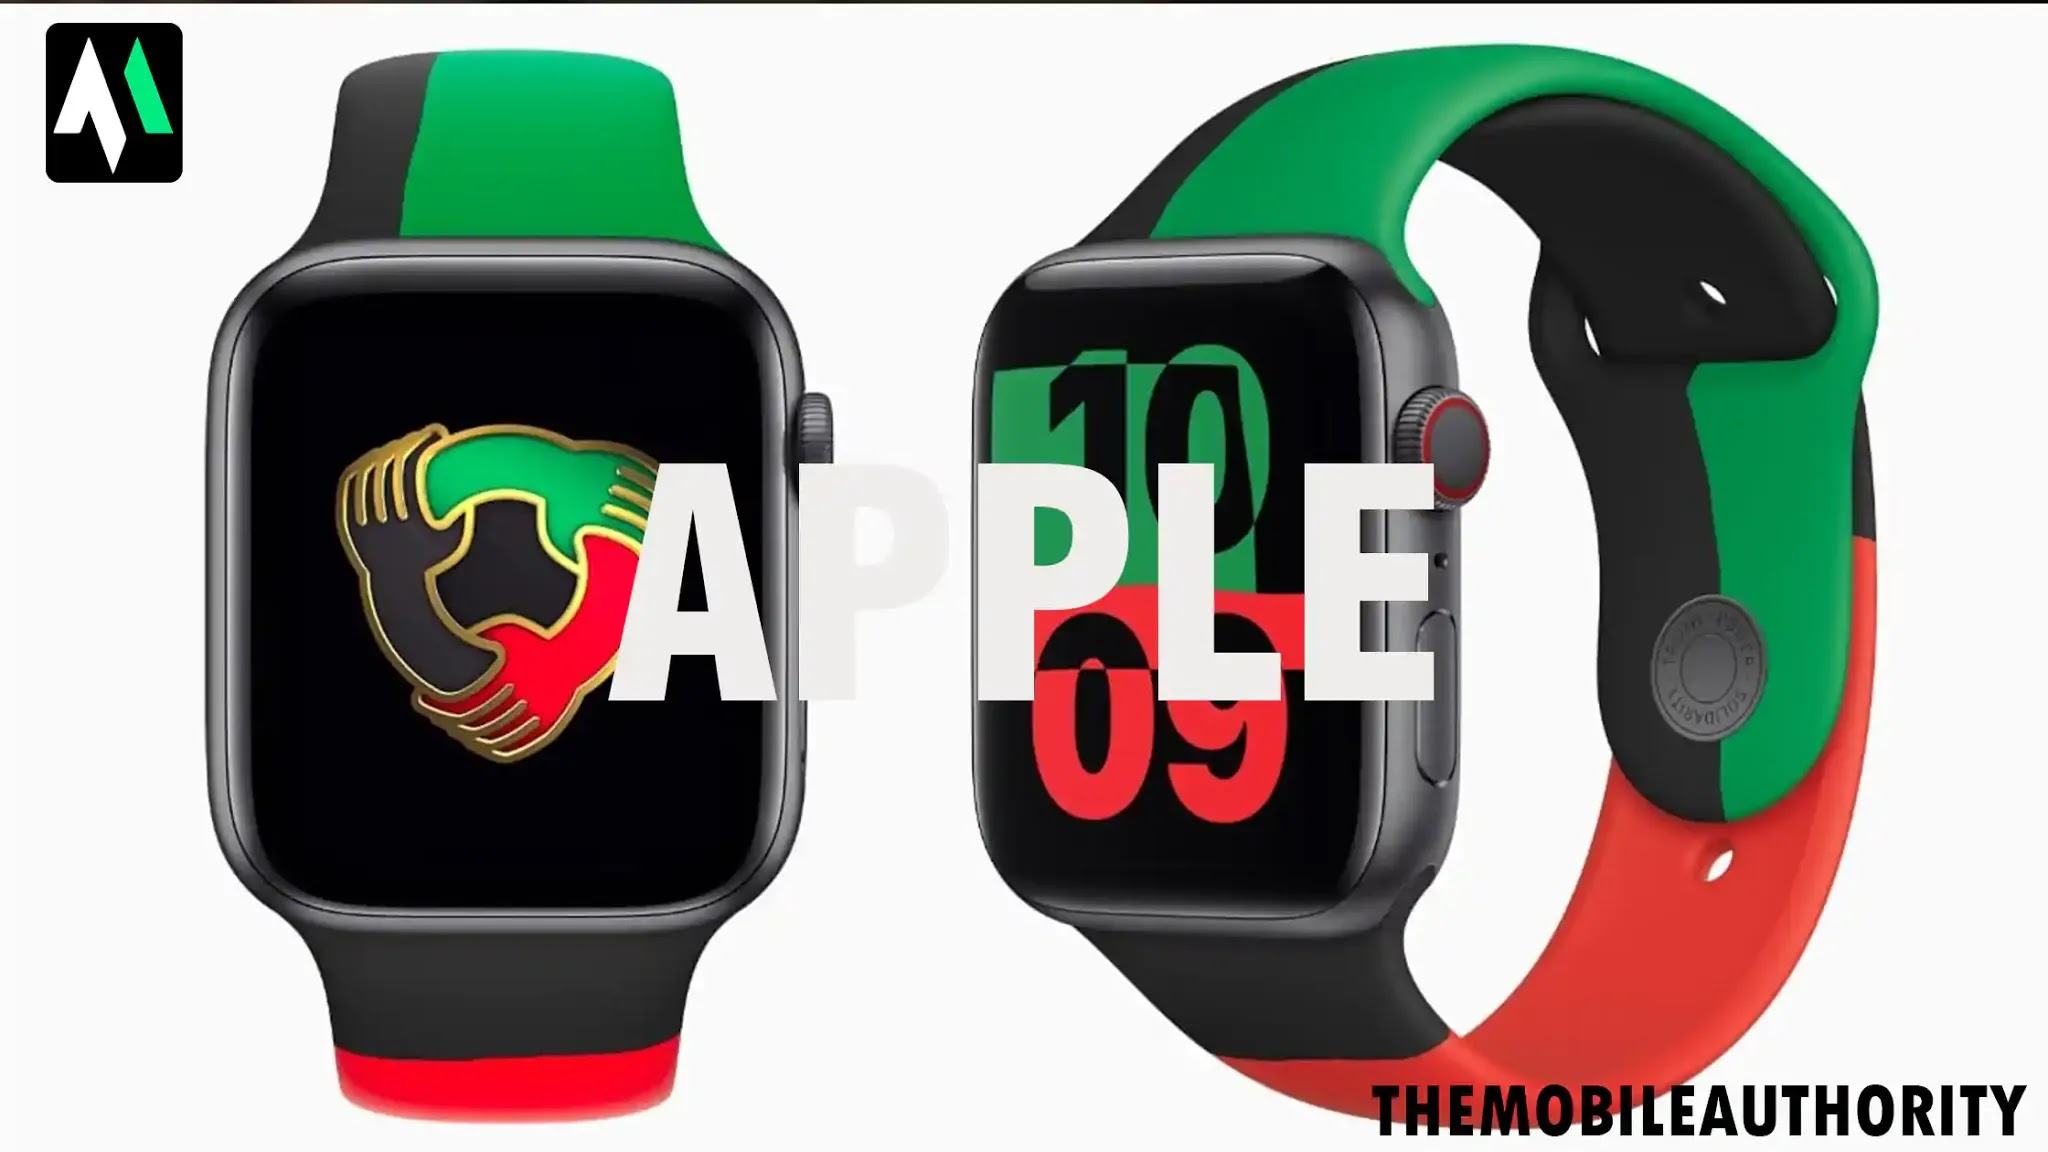 Apple brings out Limited Edition Black Unity Apple Watch 6